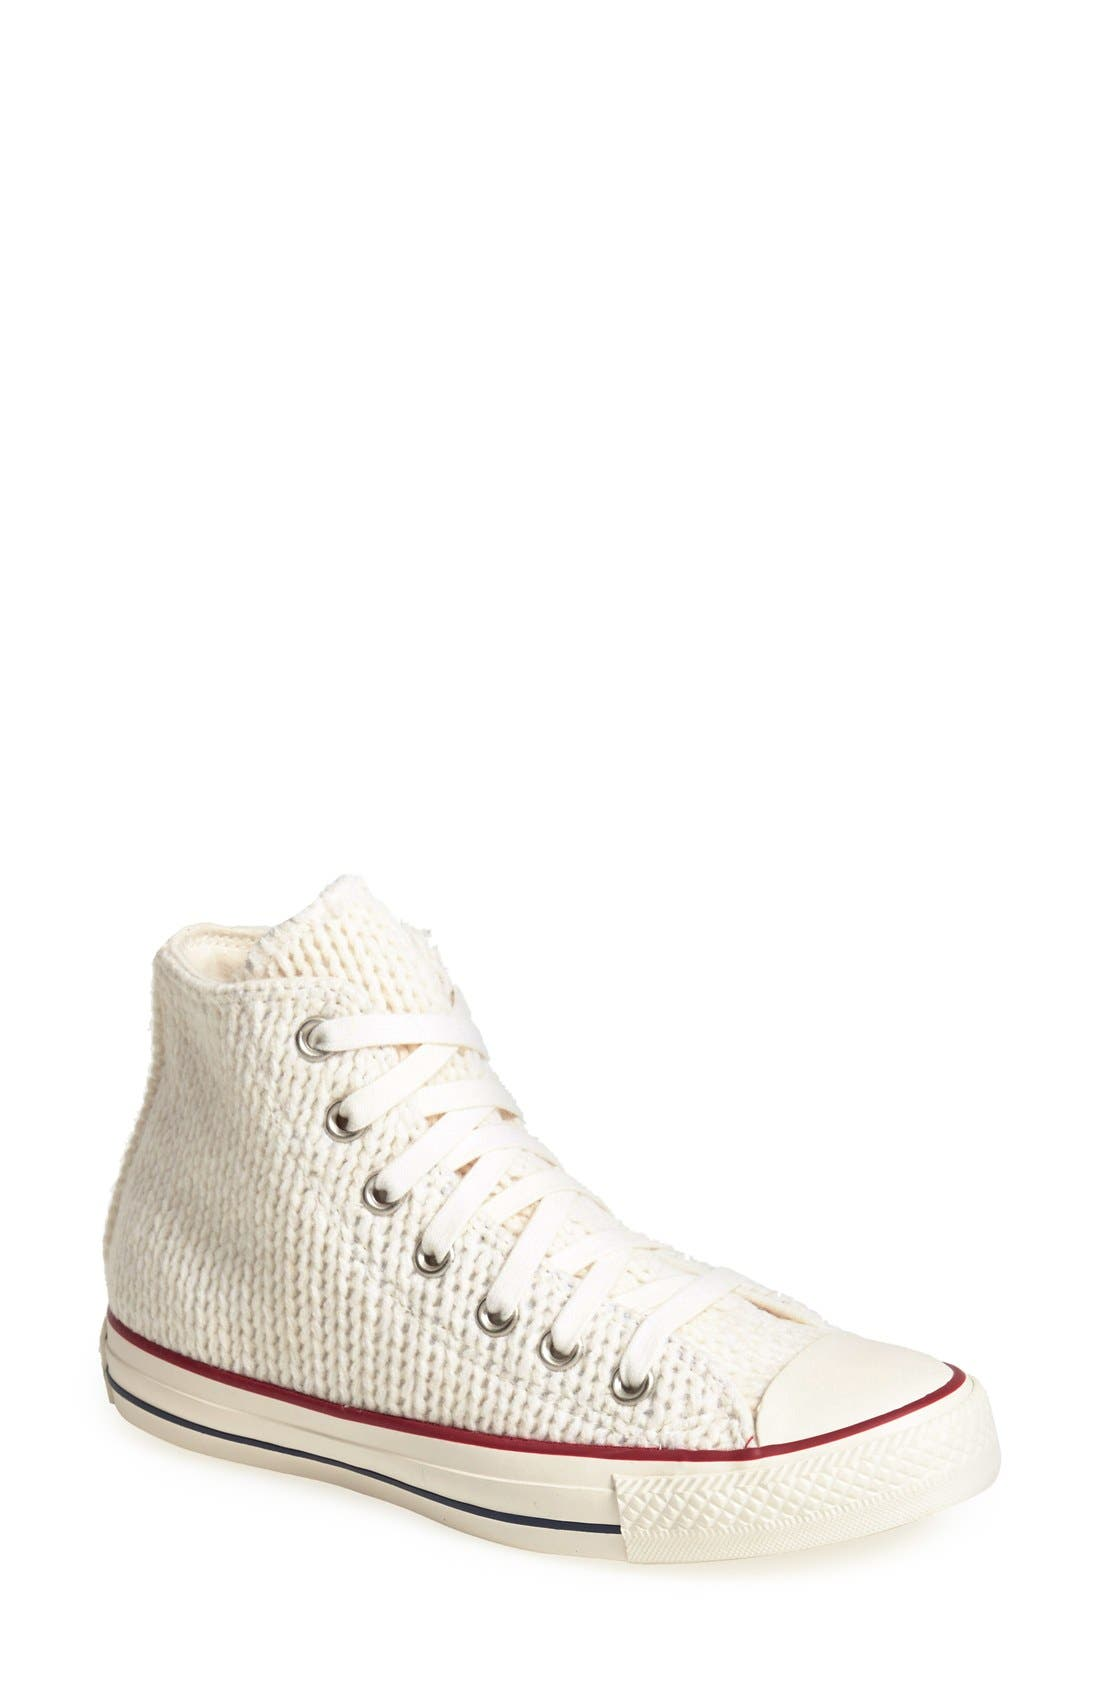 Alternate Image 1 Selected - Converse Chuck Taylor® All Star® 'Winter Knit' High Top Sneaker (Women)